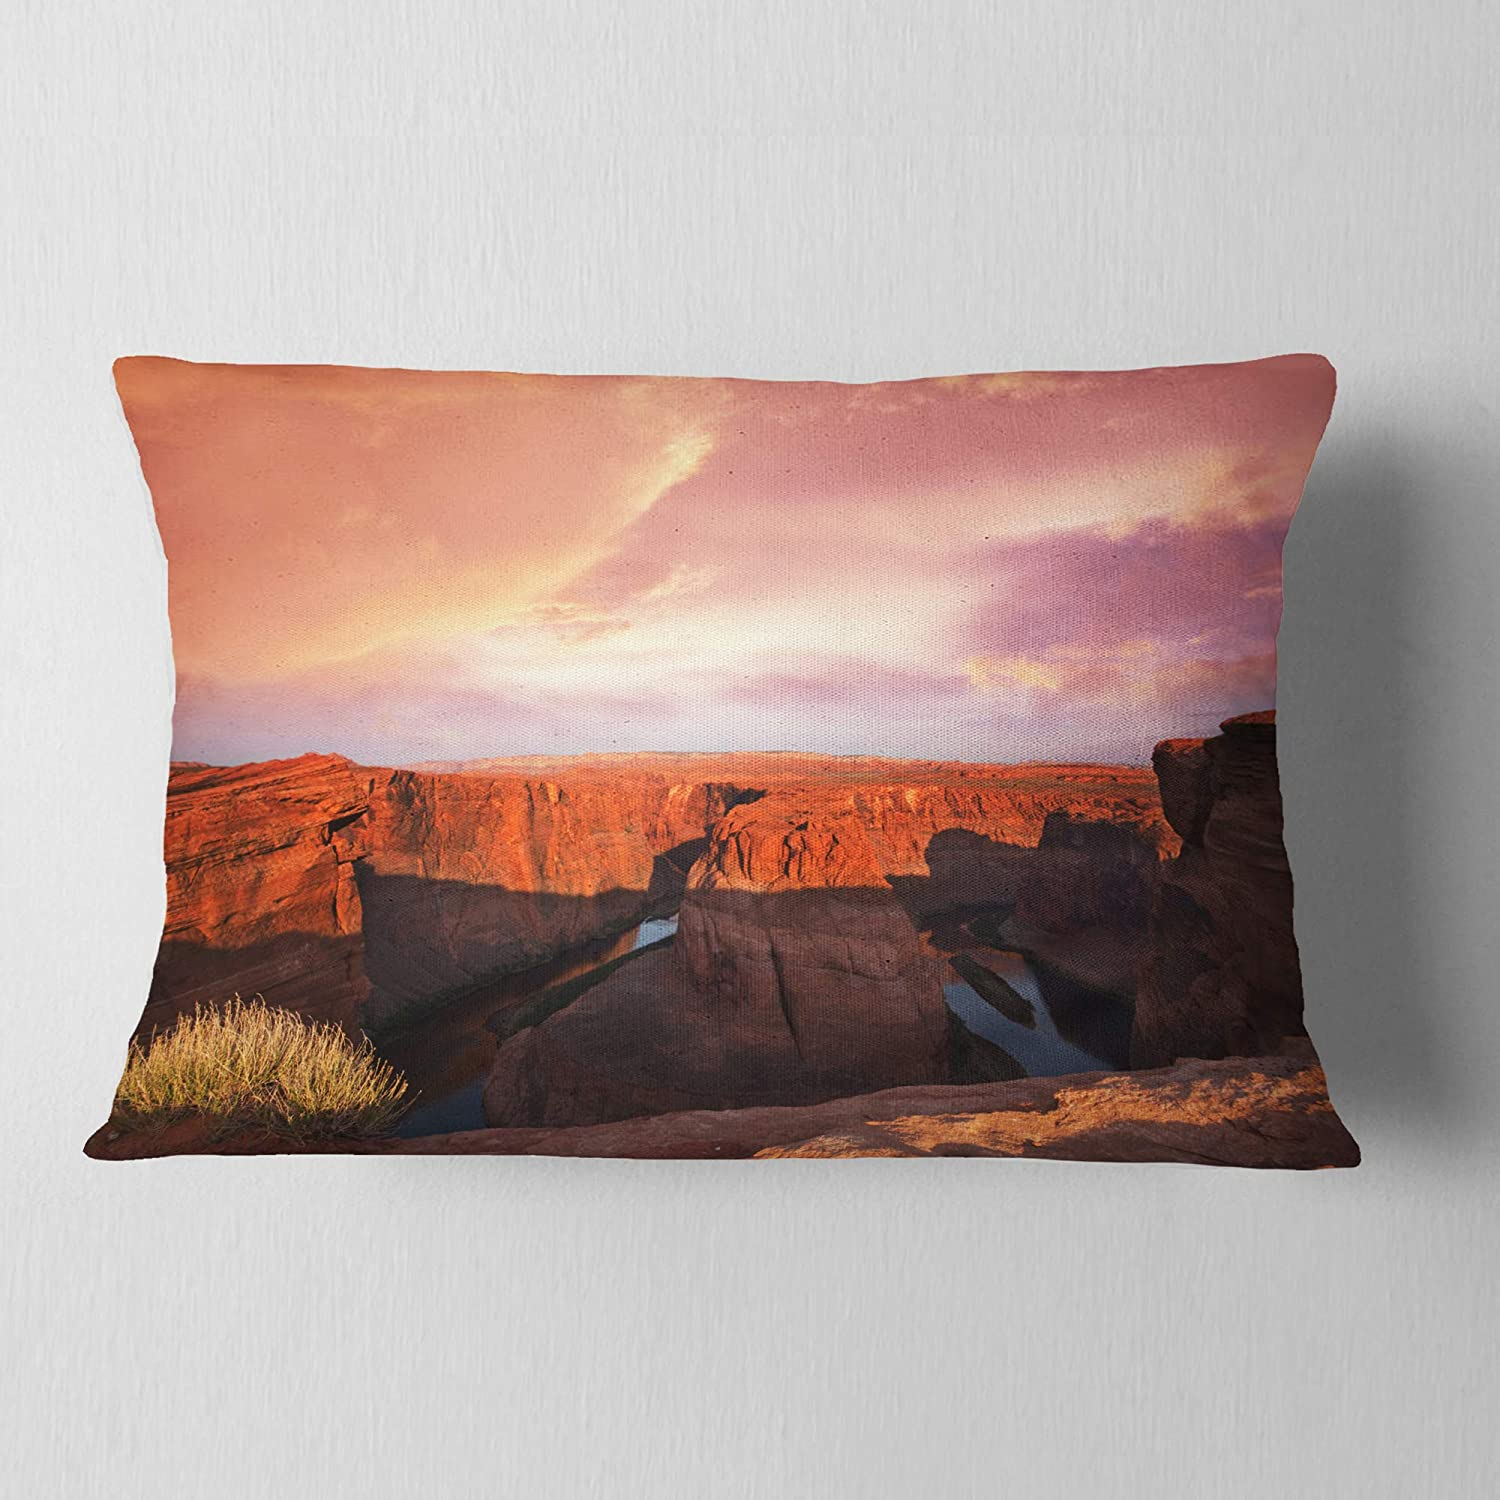 Designart CU12533-12-20 Horse Shoe Bend Under Cloudy Sky' Landscape Printed Lumbar Cushion Cover for Living Room, Sofa Throw Pillow 12 in. x 20 in. in, Insert Side